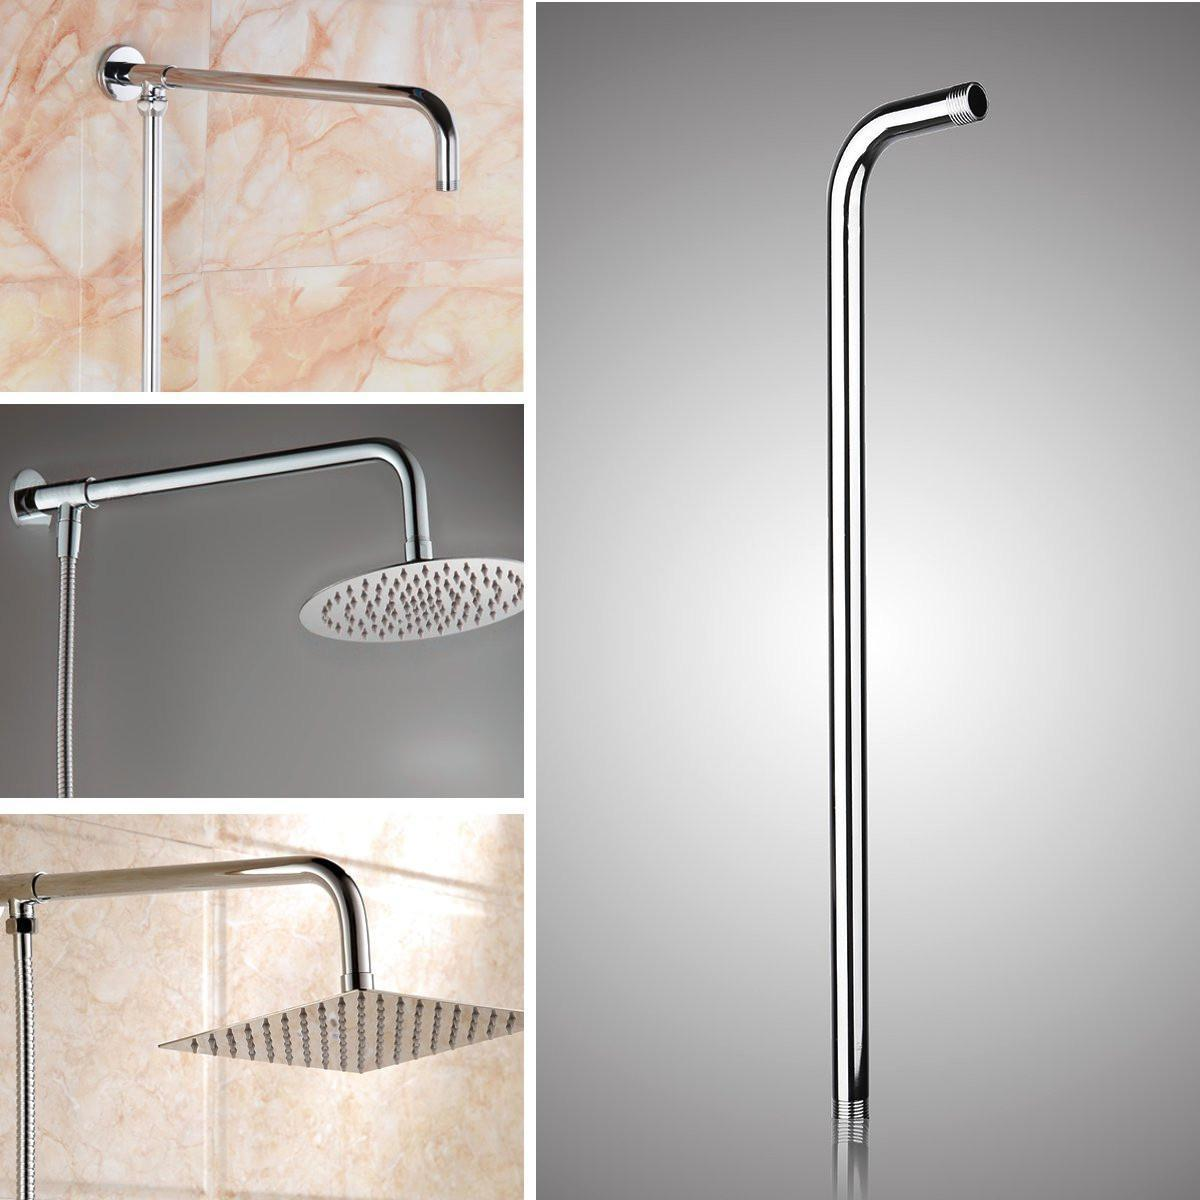 2019 24inch Wall Mounted Stainless Steel Shower Extension Arm For Rainfall Shower Head Arms Bathroom Tools Accessories From Sunnysleepvip8 23 51